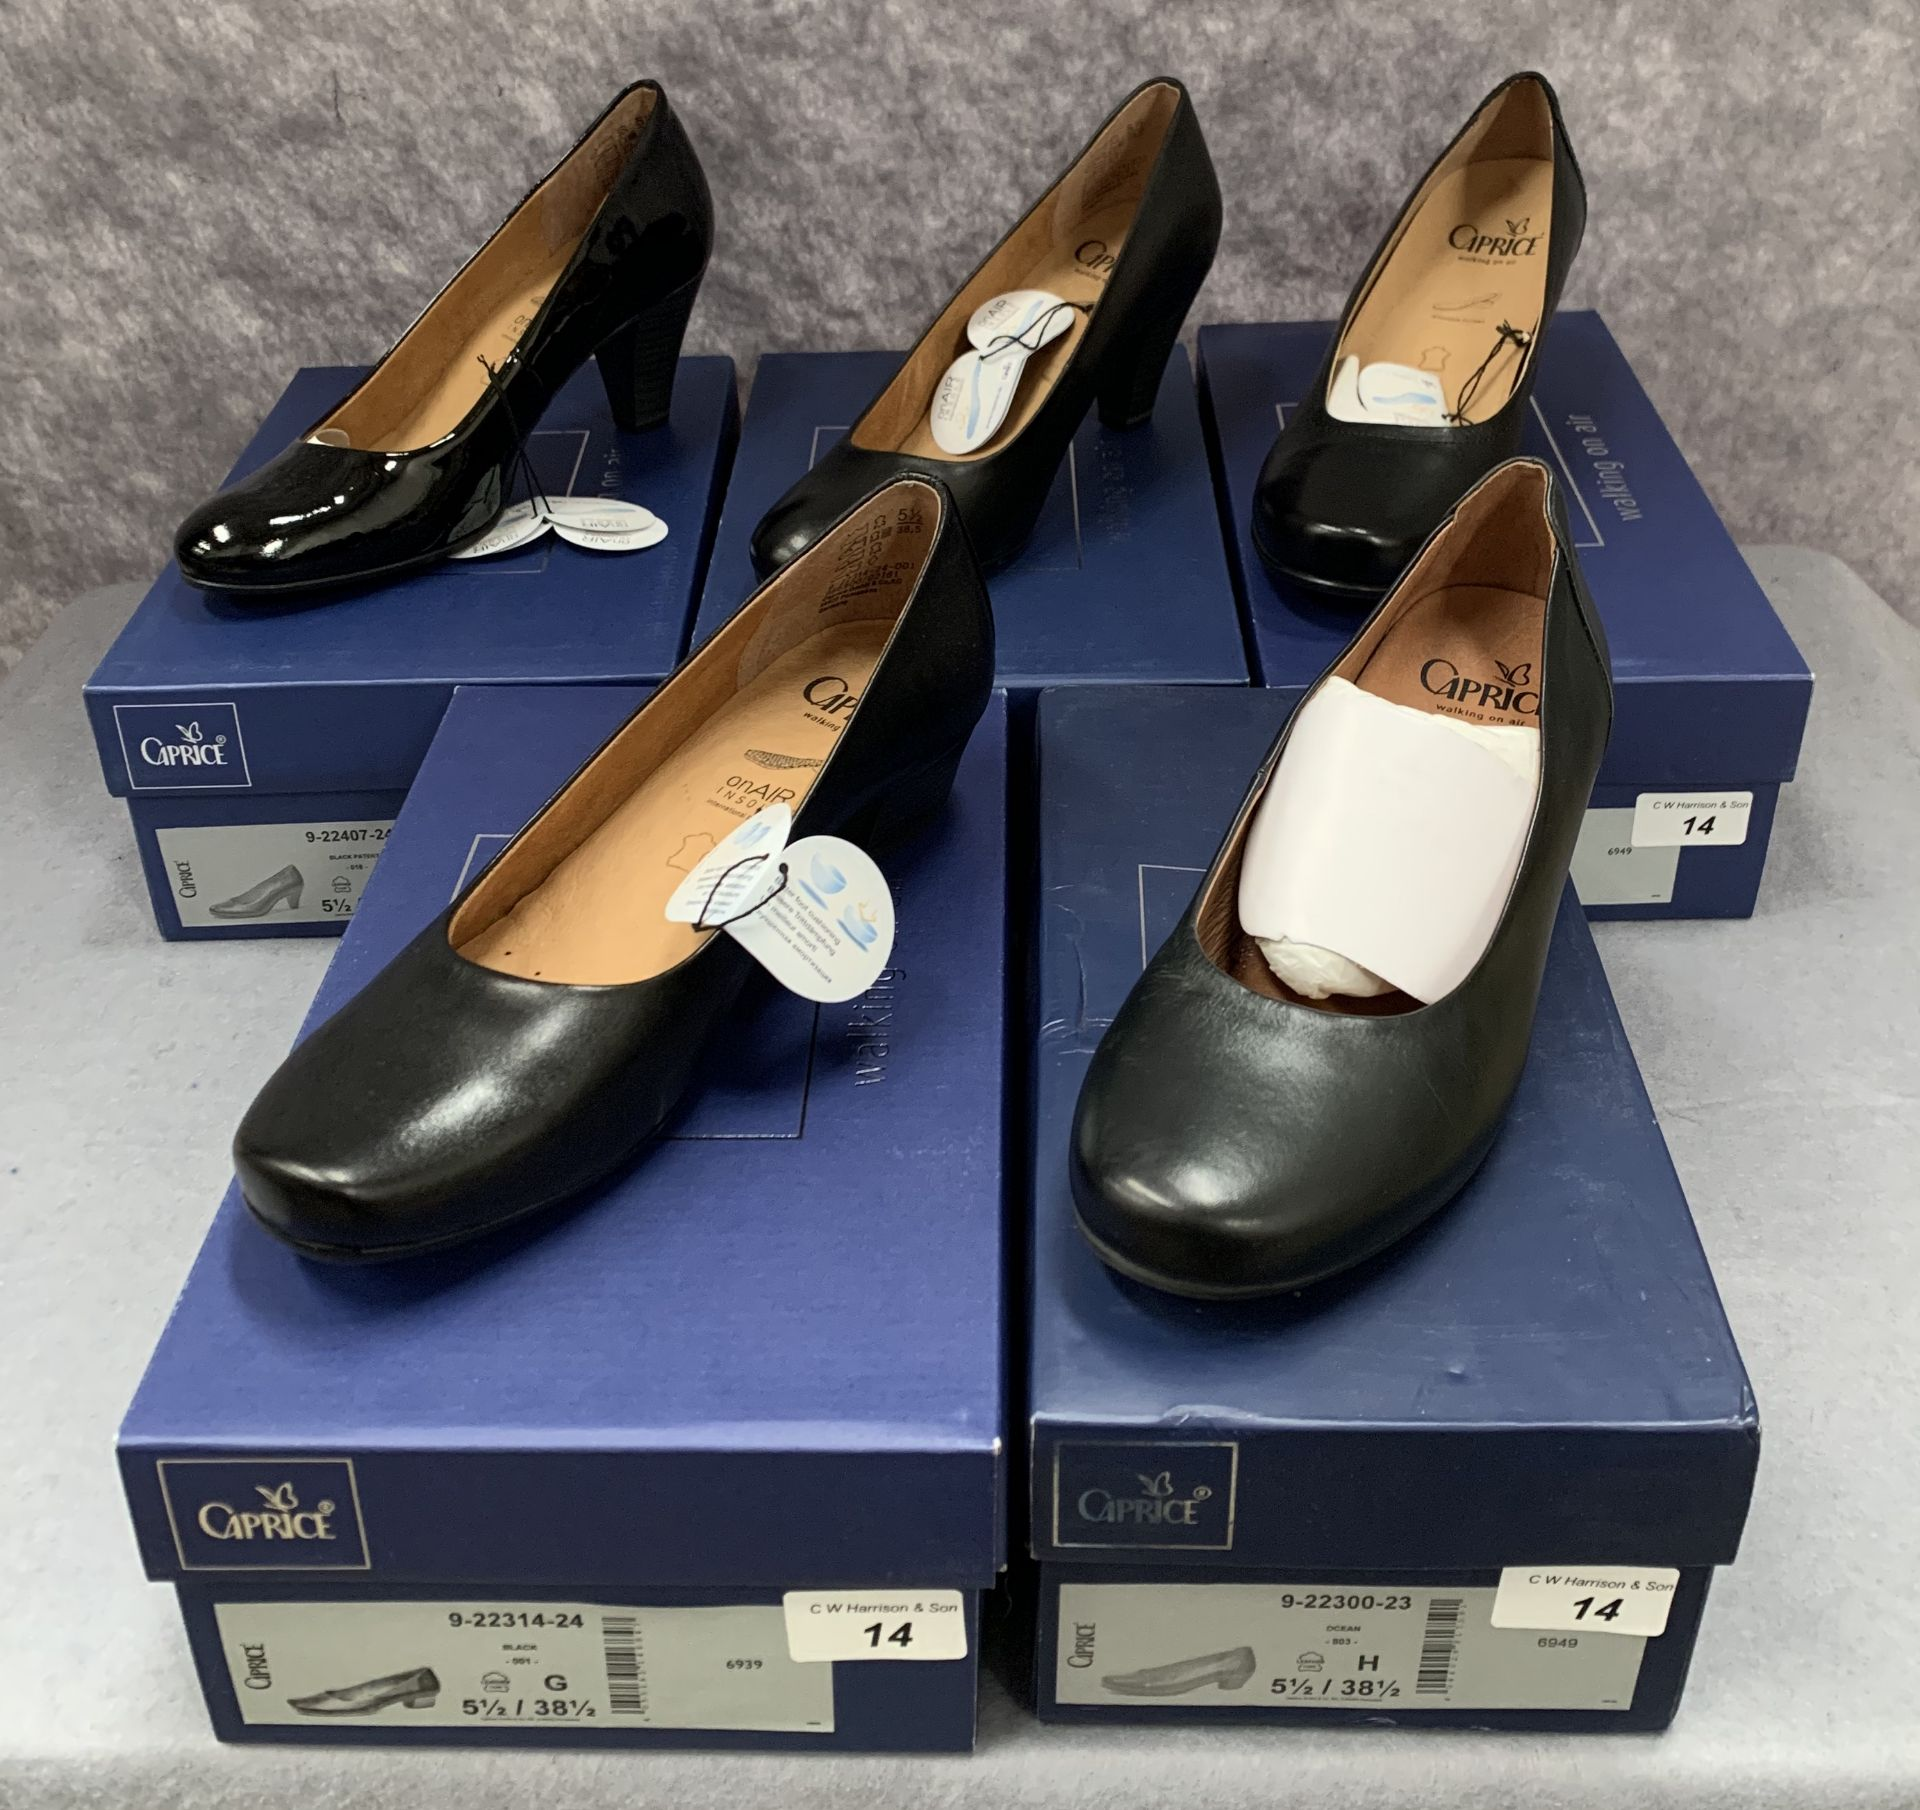 Lot 14 - Five pairs of Caprice ladies shoes in black (4) and ocean (1), various styles, size 5½,